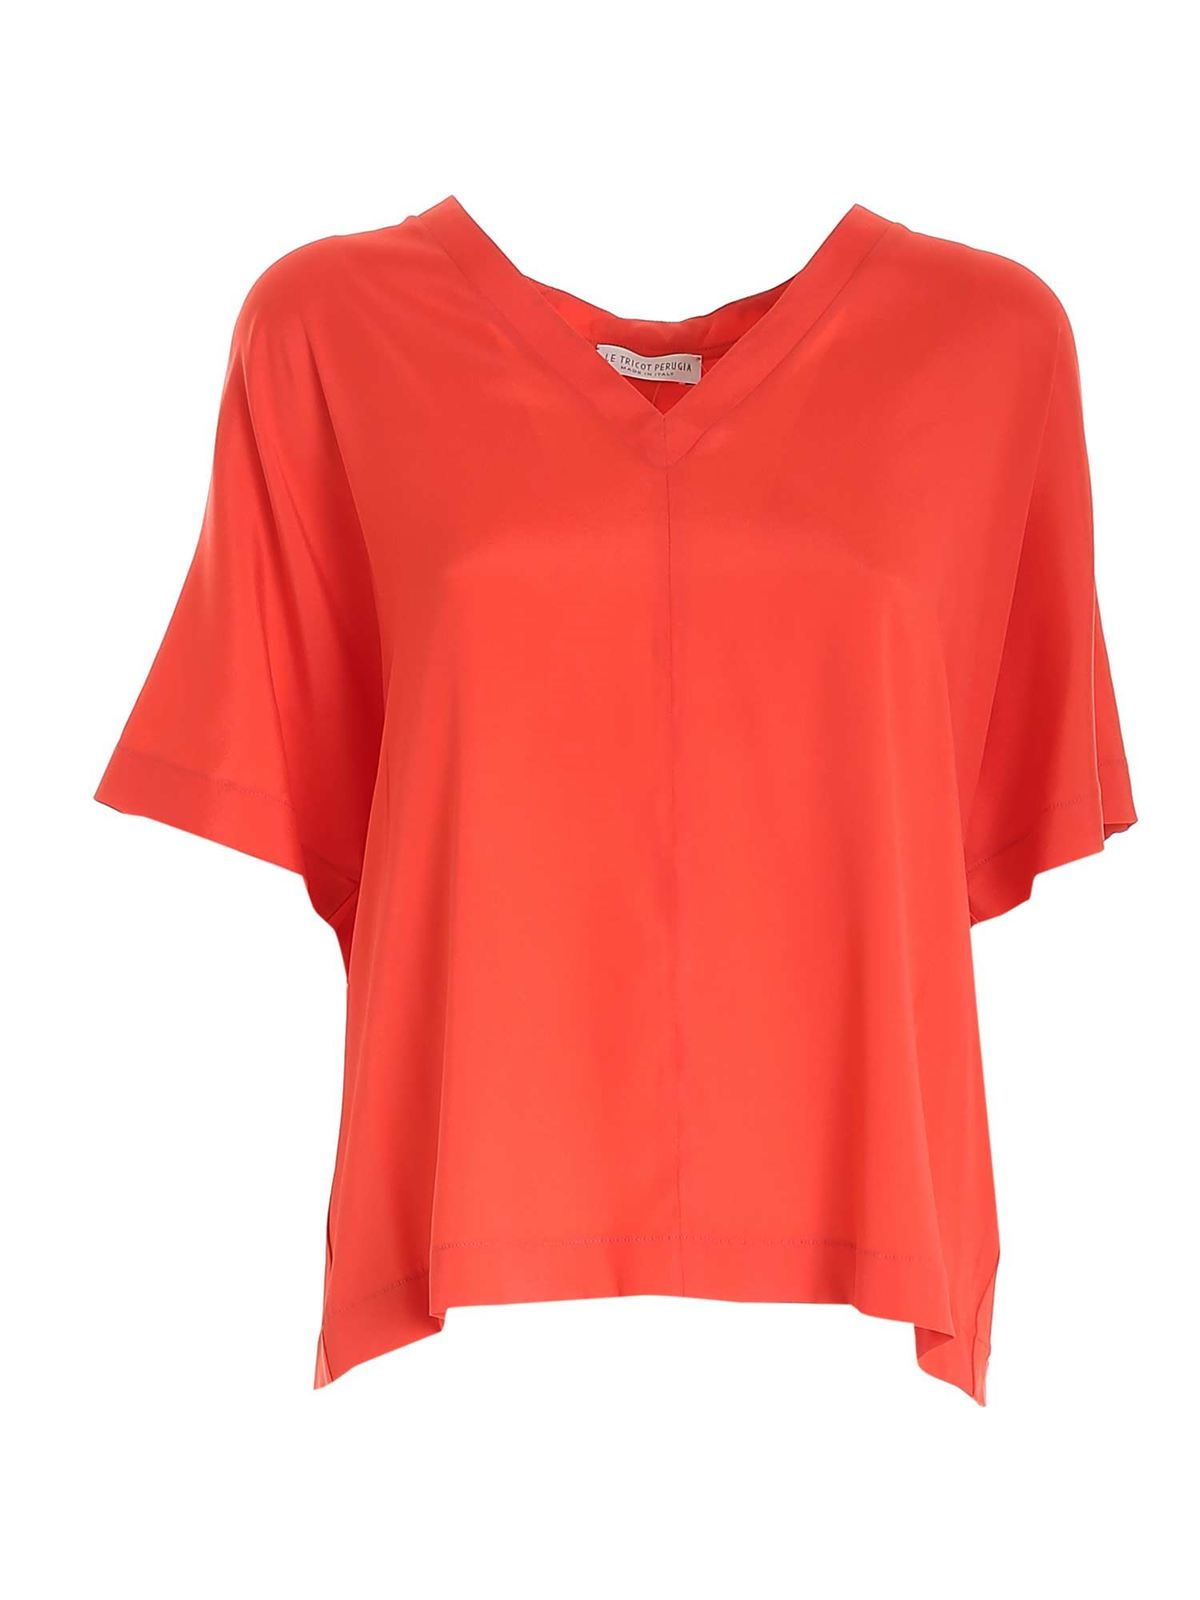 Le Tricot Perugia Blouses BOXY T-SHIRT IN CORAL RED